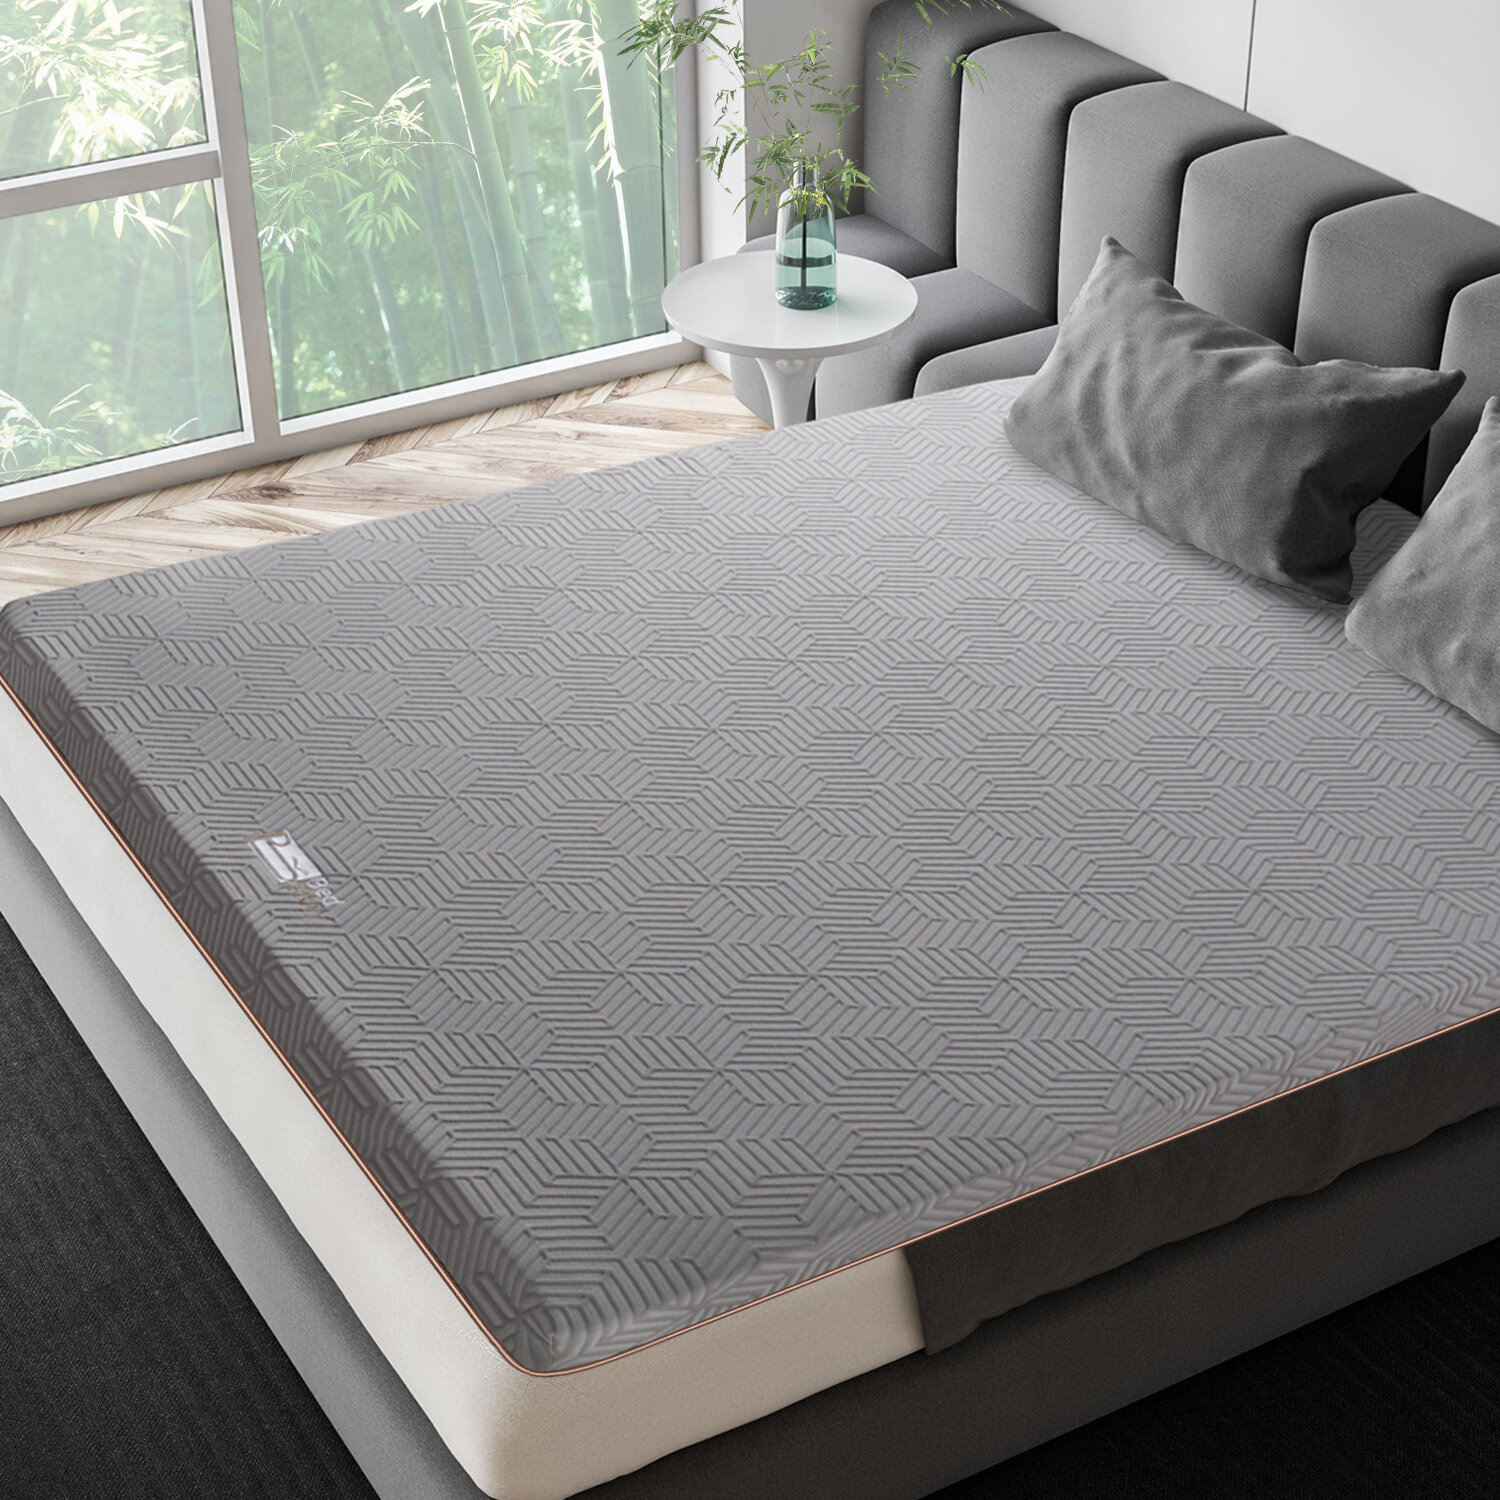 with Removable Cover Ventilated Design Foam Mattress Pad with CertiPUR-US BedStory 3 inch Gel Mattress Topper CK Gel Infused Memory Foam Mattress Topper